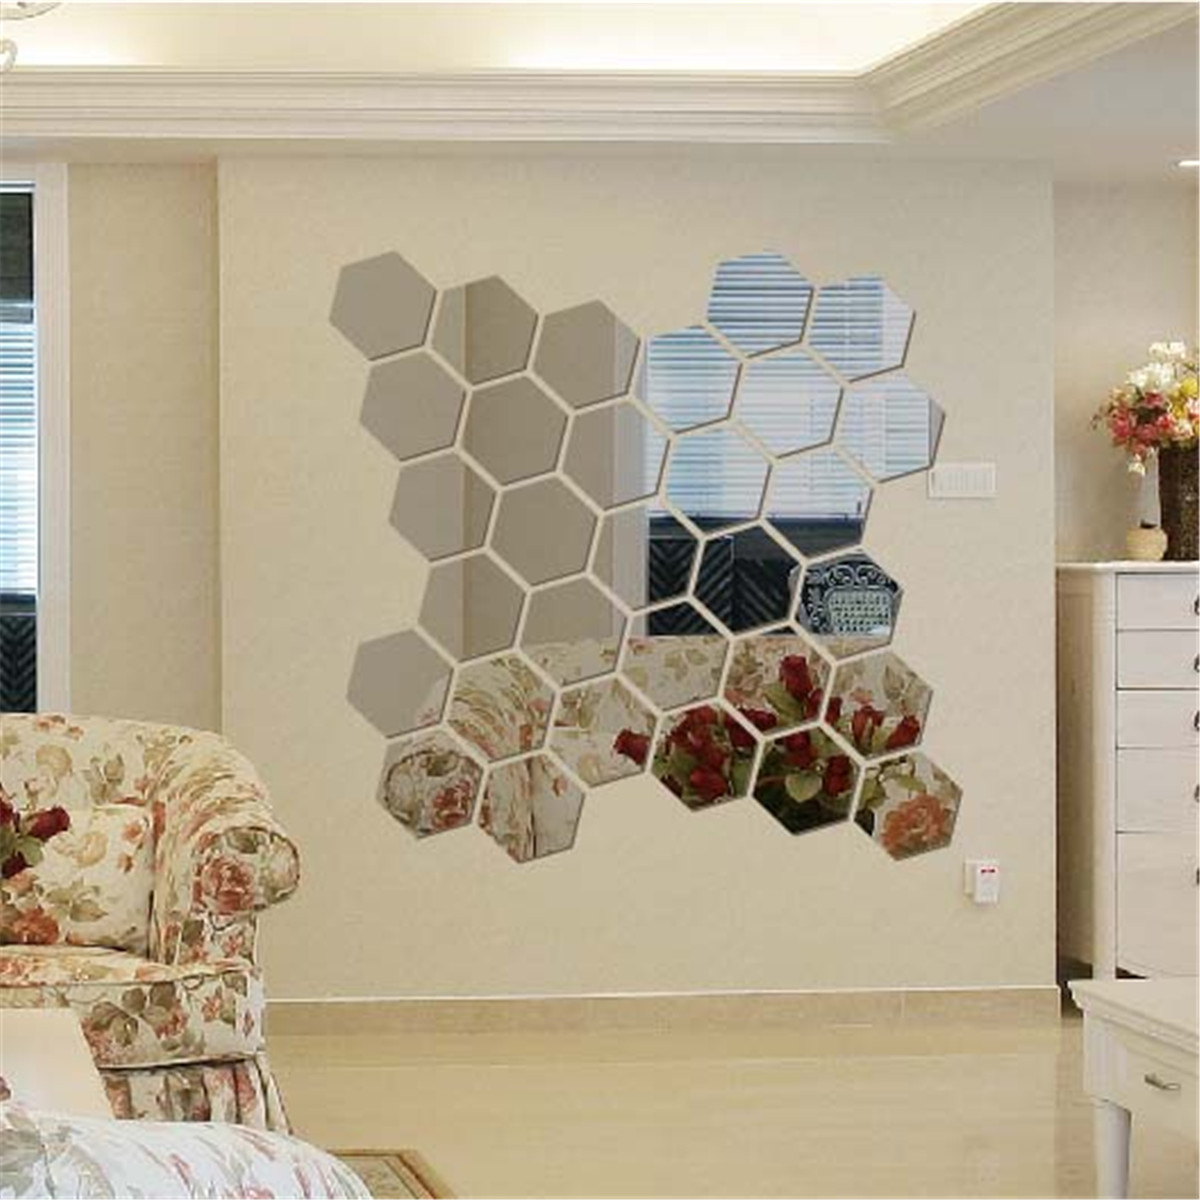 Modern Plastic Wall Decor : Pcs d modern mirror geometric hexagon acrylic wall